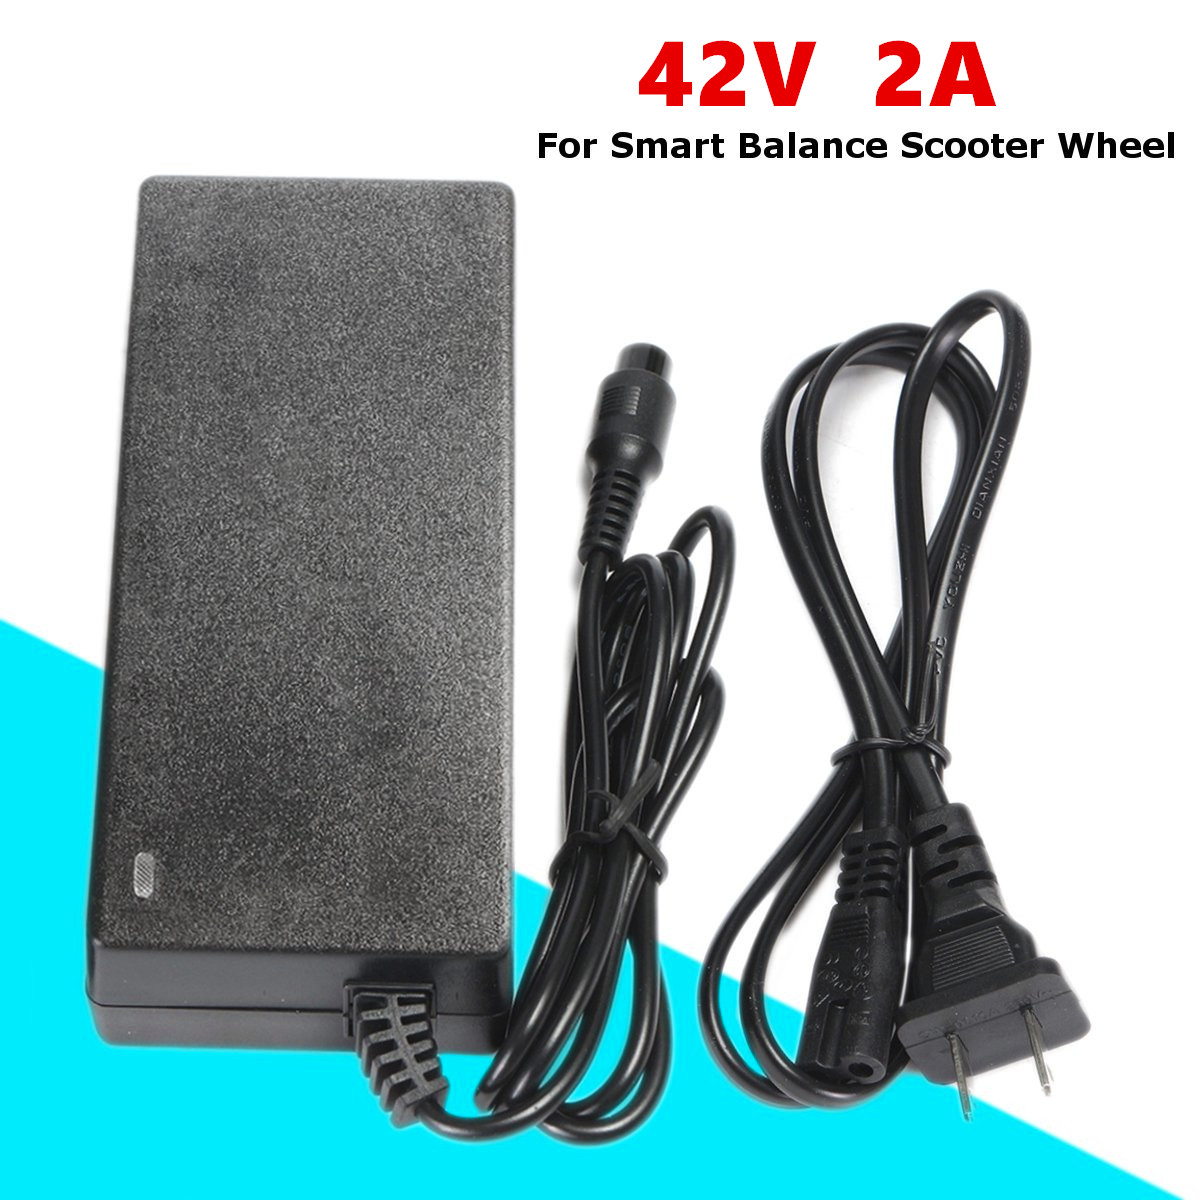 42V 2A AC DC Power Adapter Battery Charger For Smart Balance Scooter Wheel 13x5.5x3cm